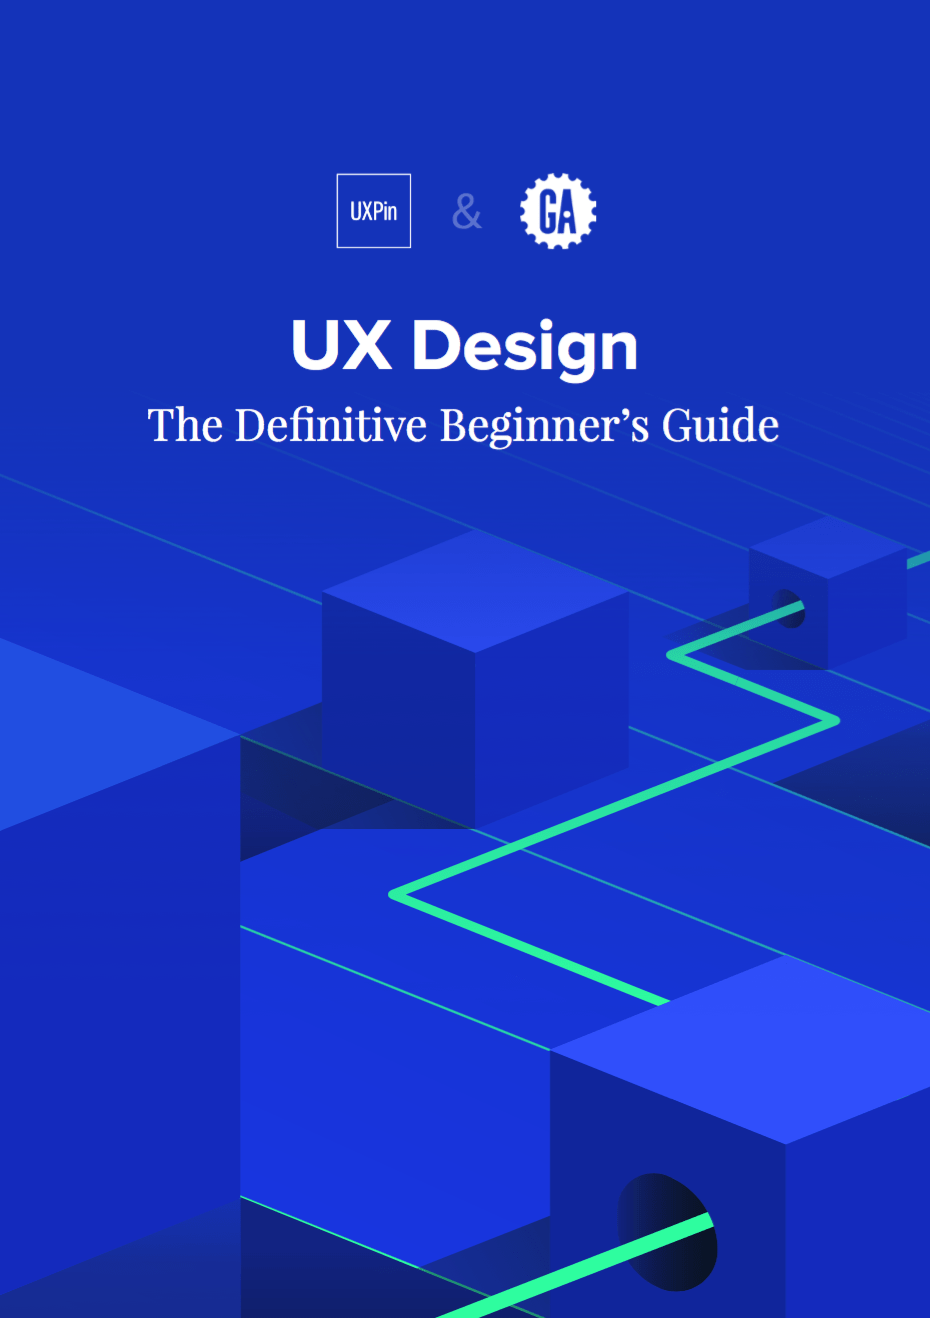 The cover of my ebook: UX Design: The Definitive Beginner's Guide